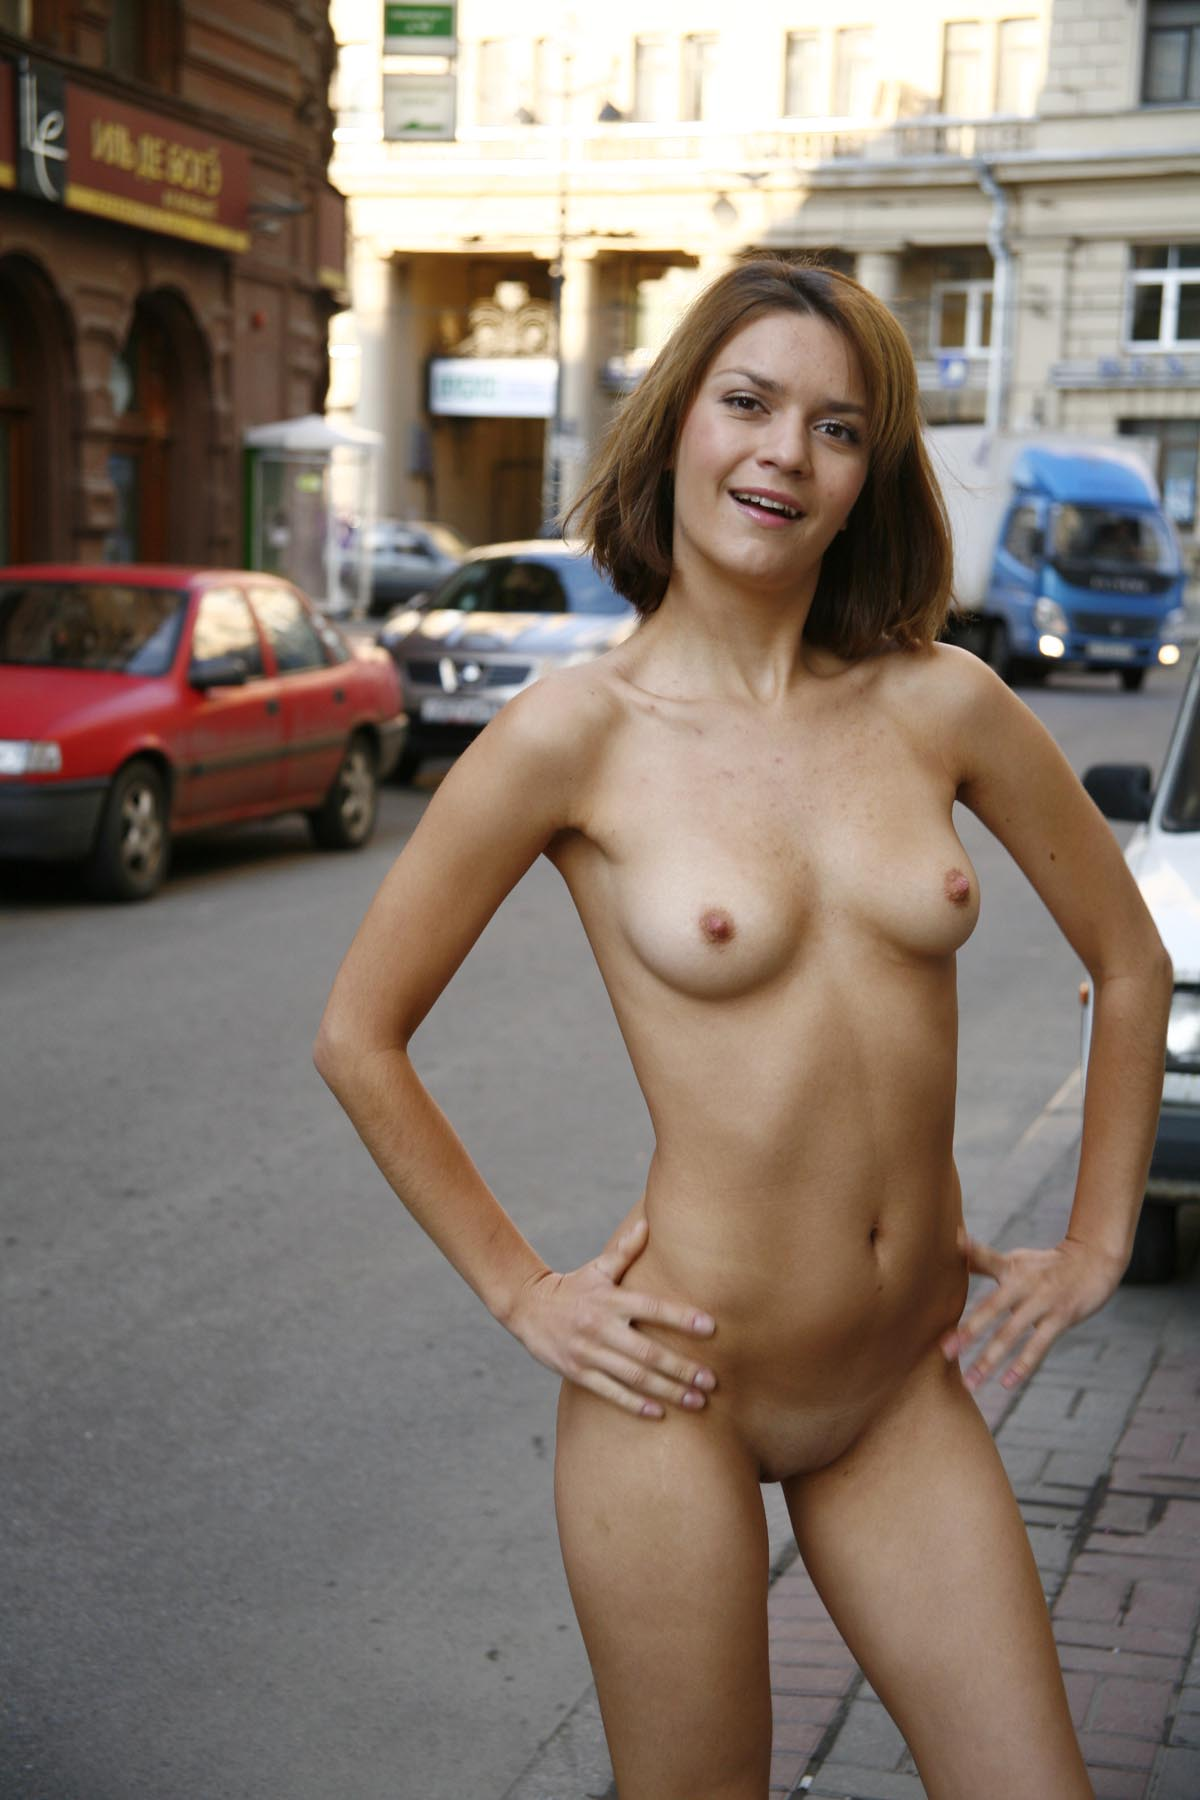 Think, Shorthaired russian girl posing naked apologise